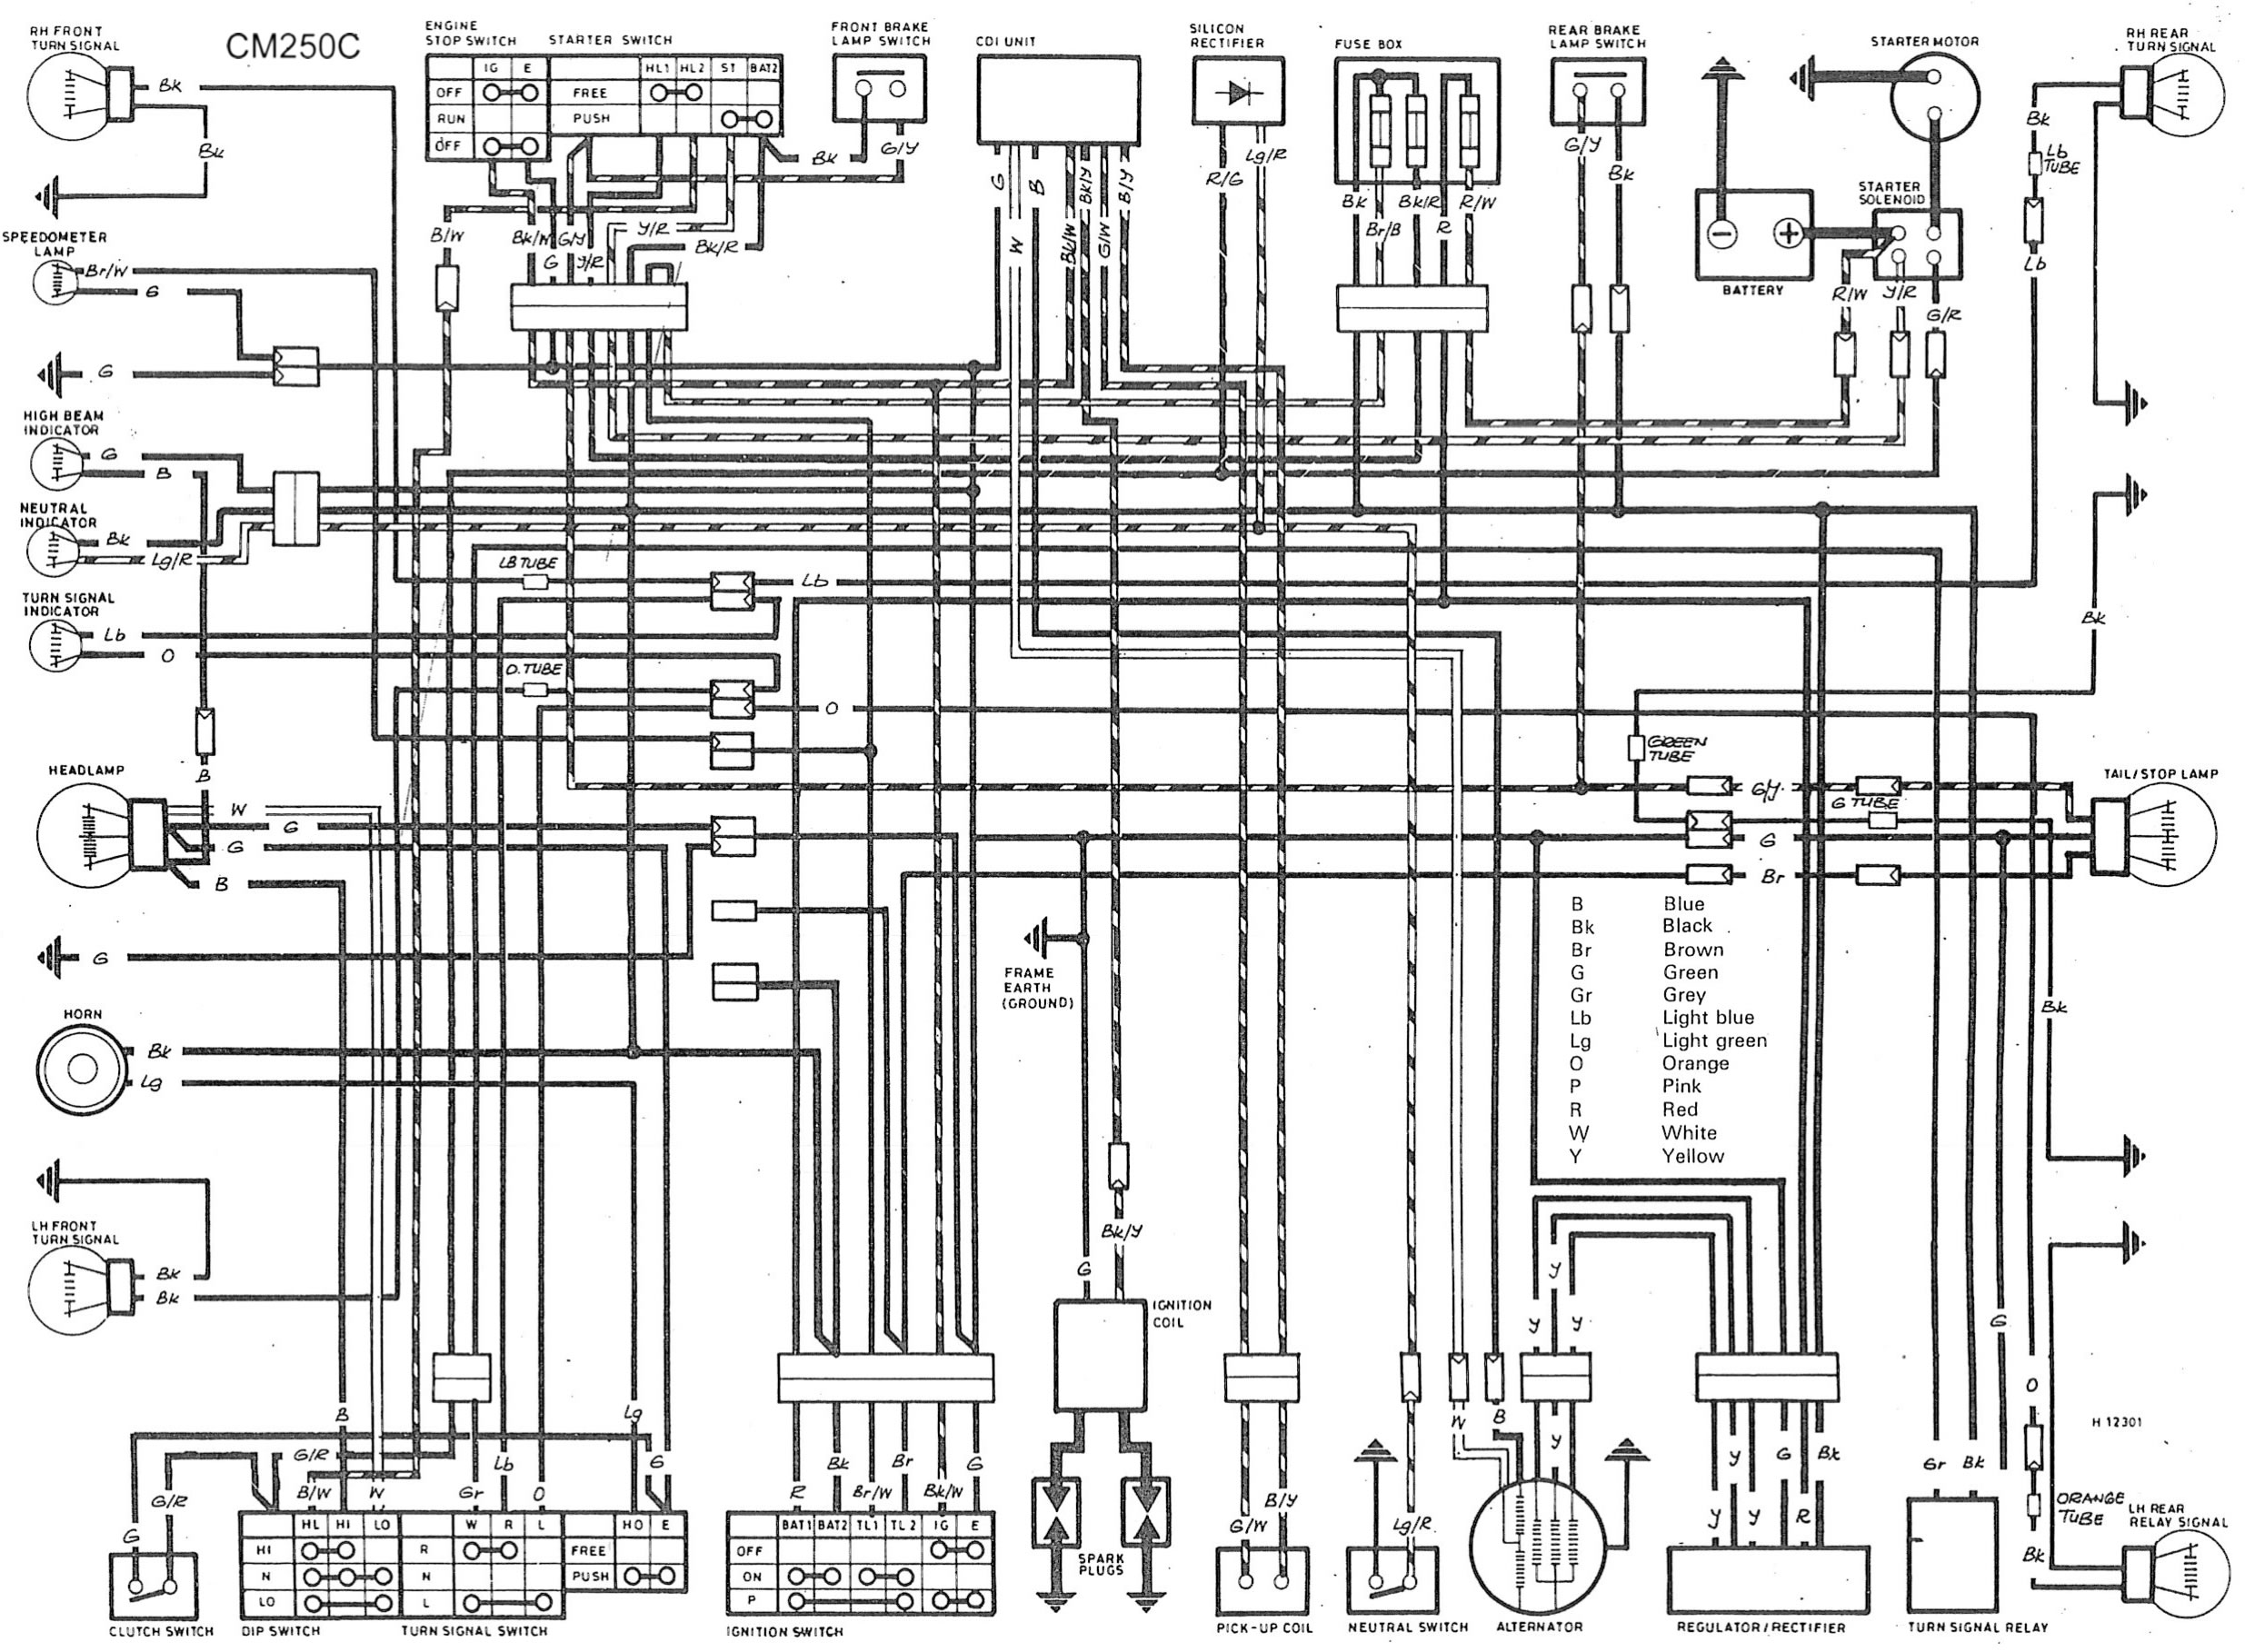 wirediagram honda cm 250 custom motorcycle (cm250c) 1984 honda nighthawk 650 wiring diagram at fashall.co